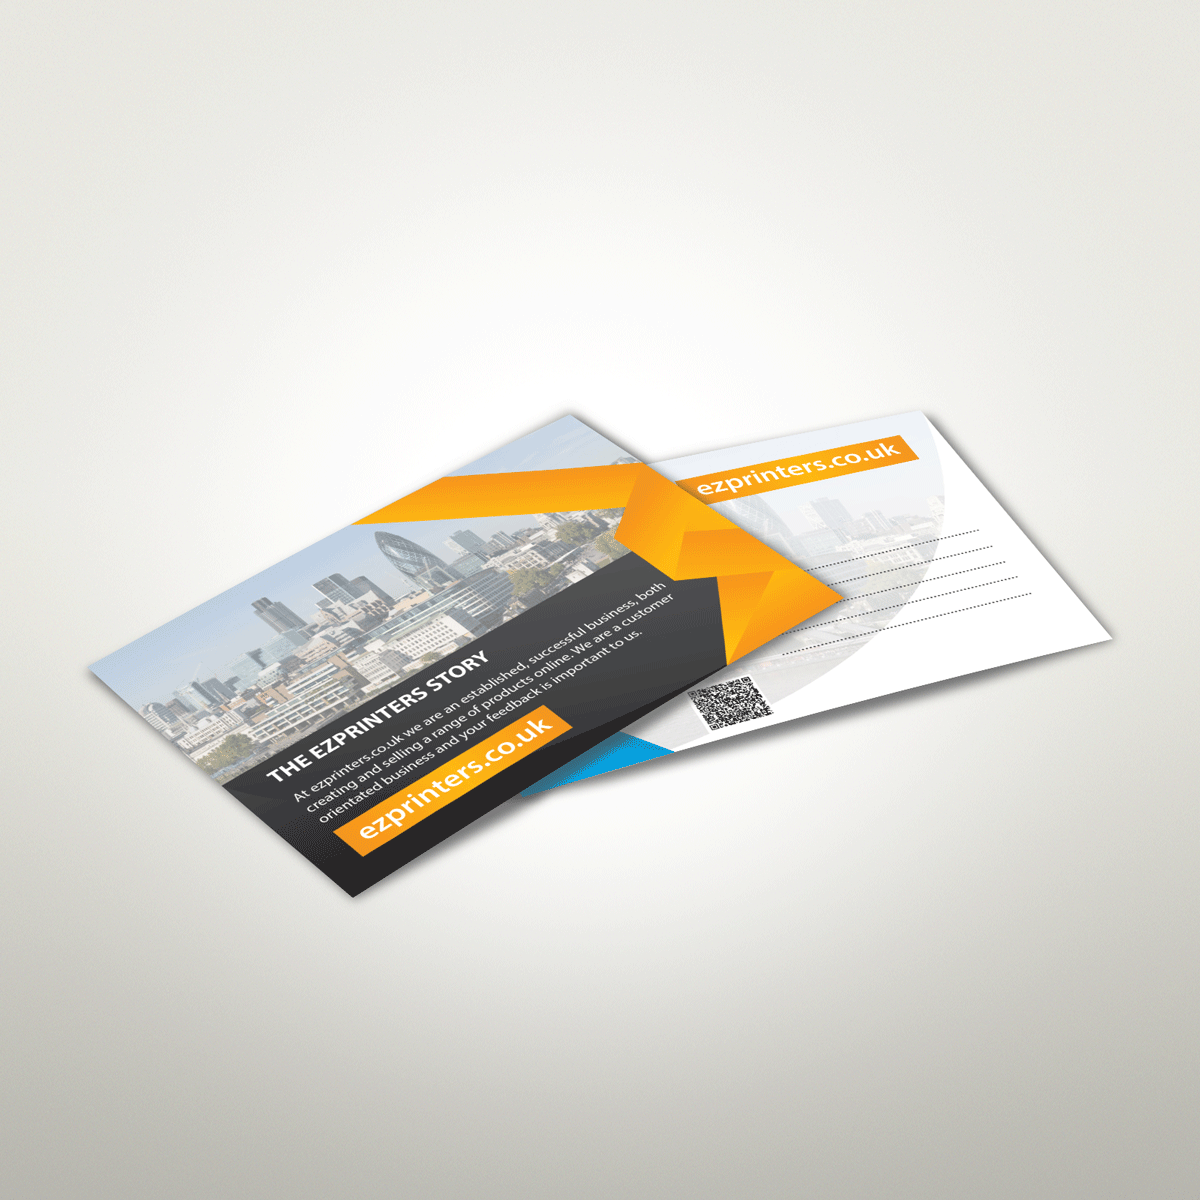 best high quality post card free artwork check printing company in london ec3 near me